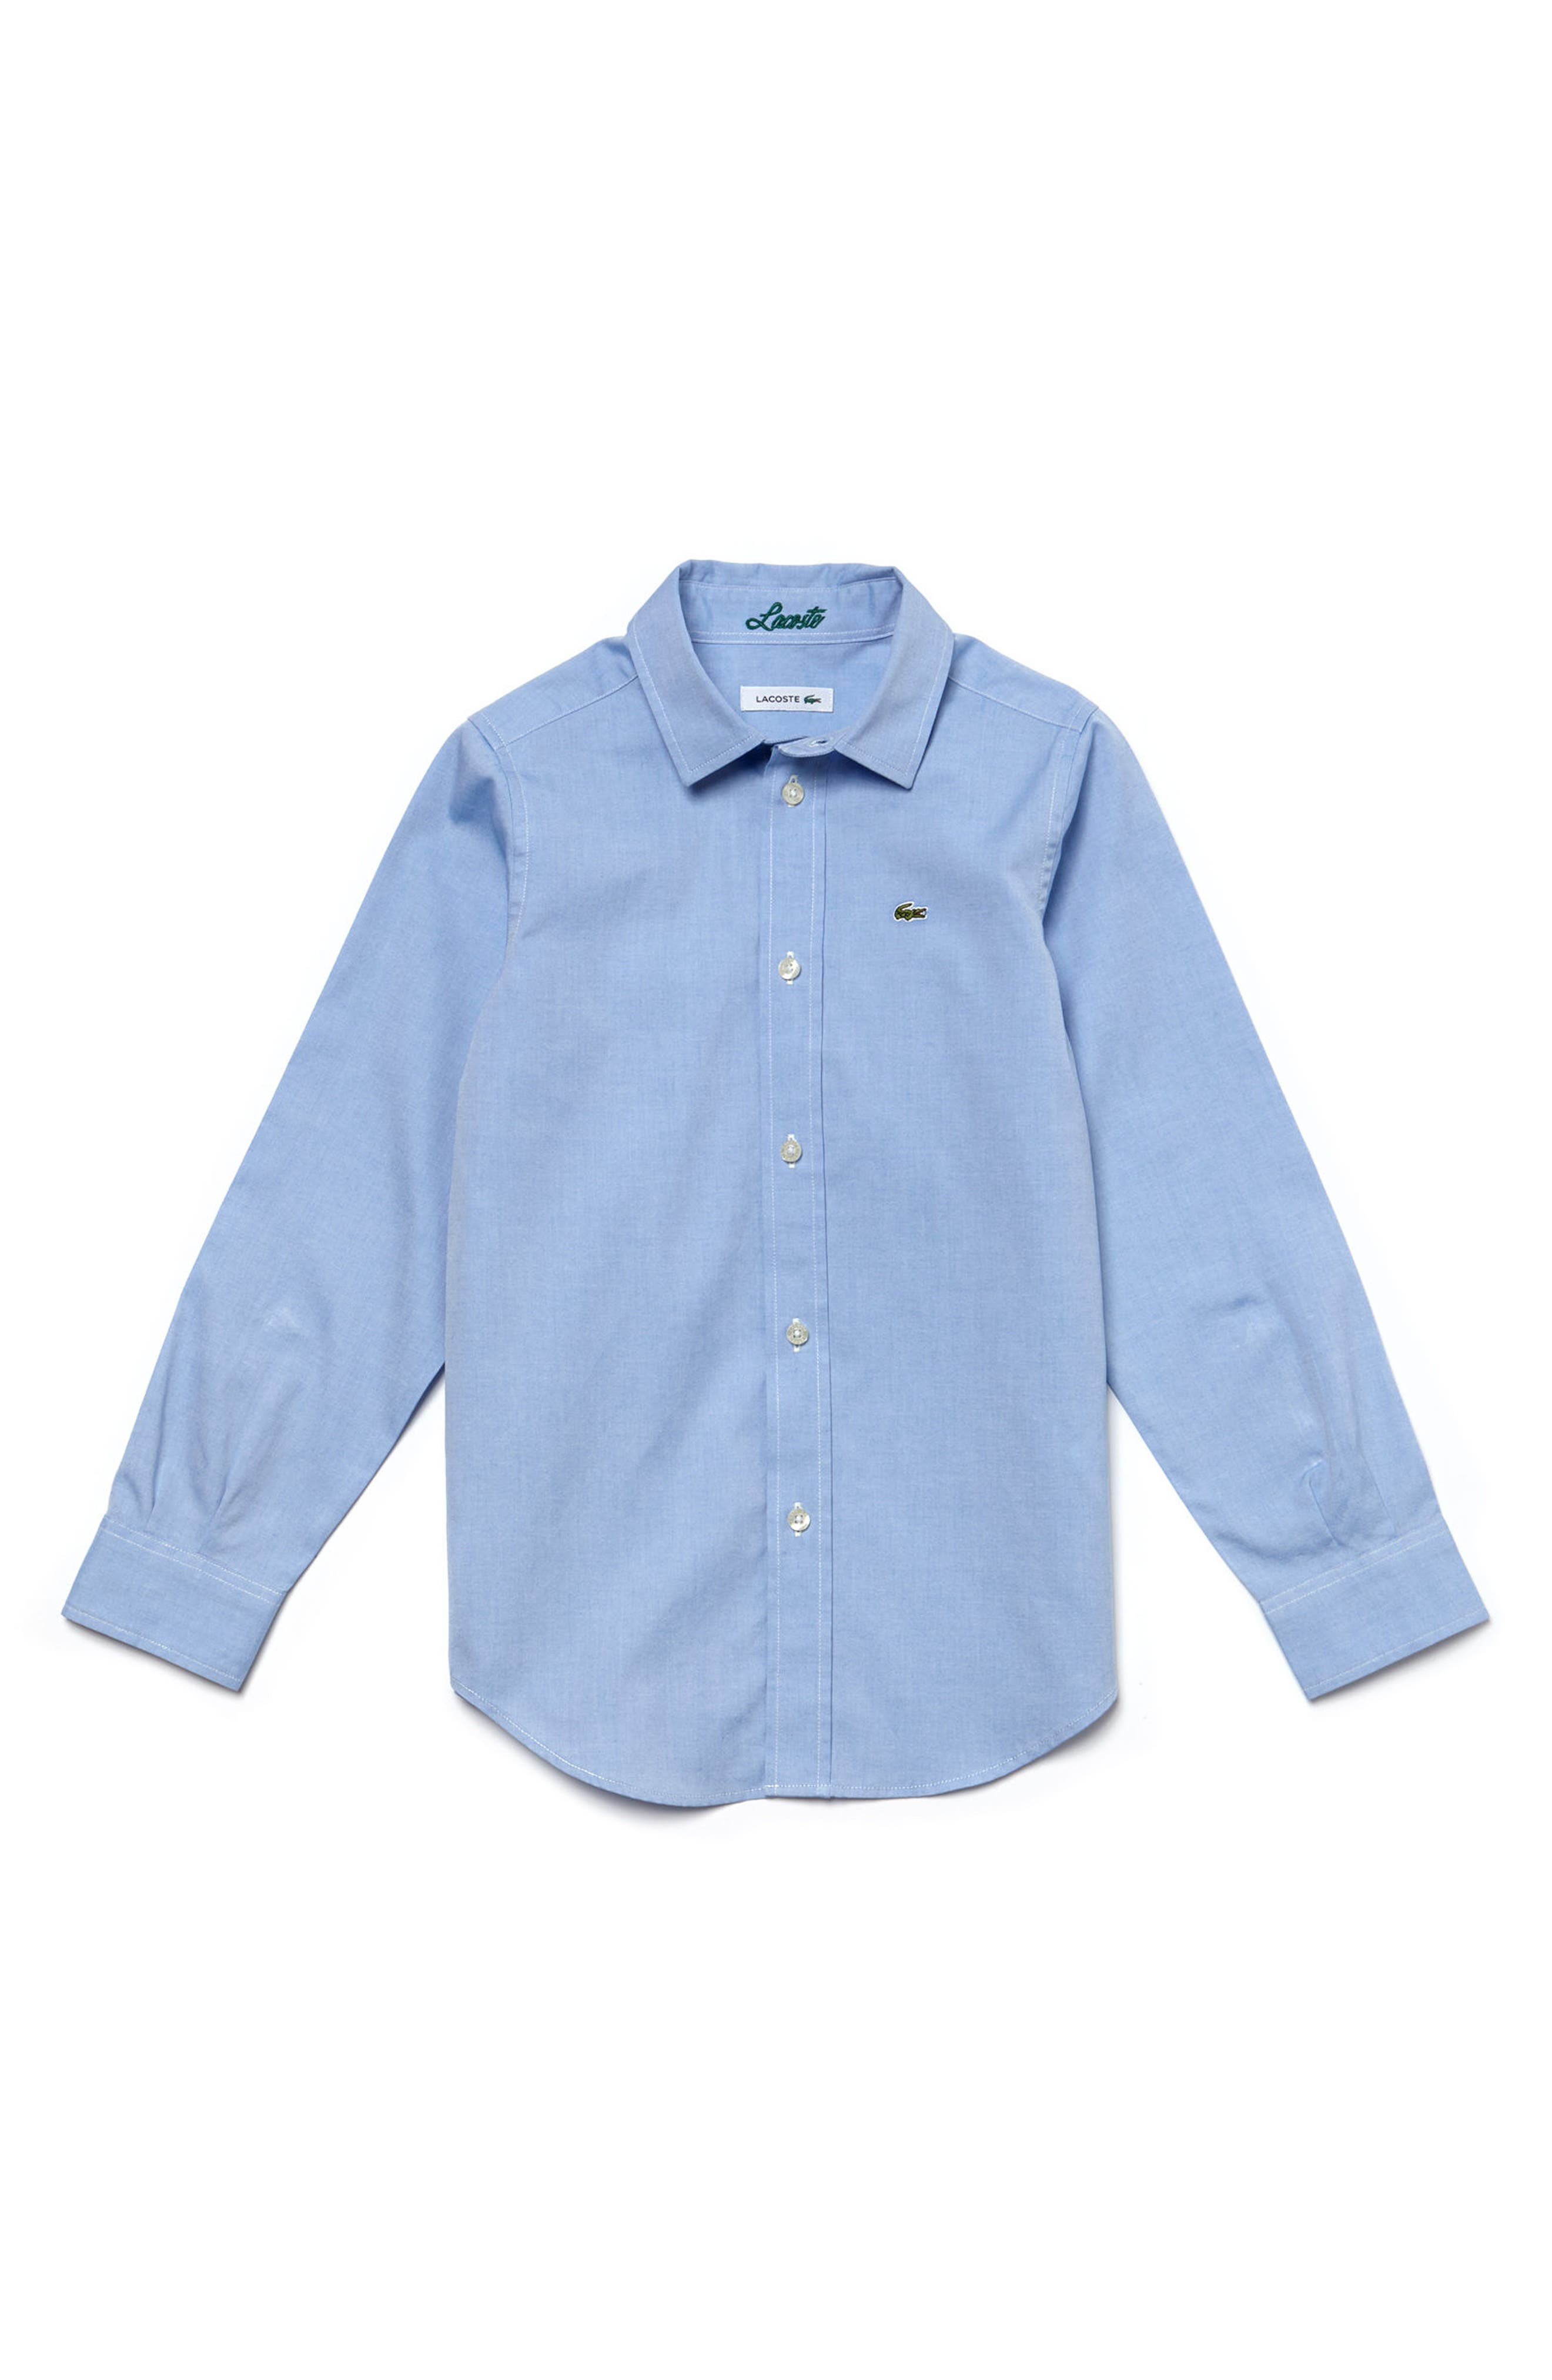 Classic Oxford Shirt,                         Main,                         color, Rill Light Blue